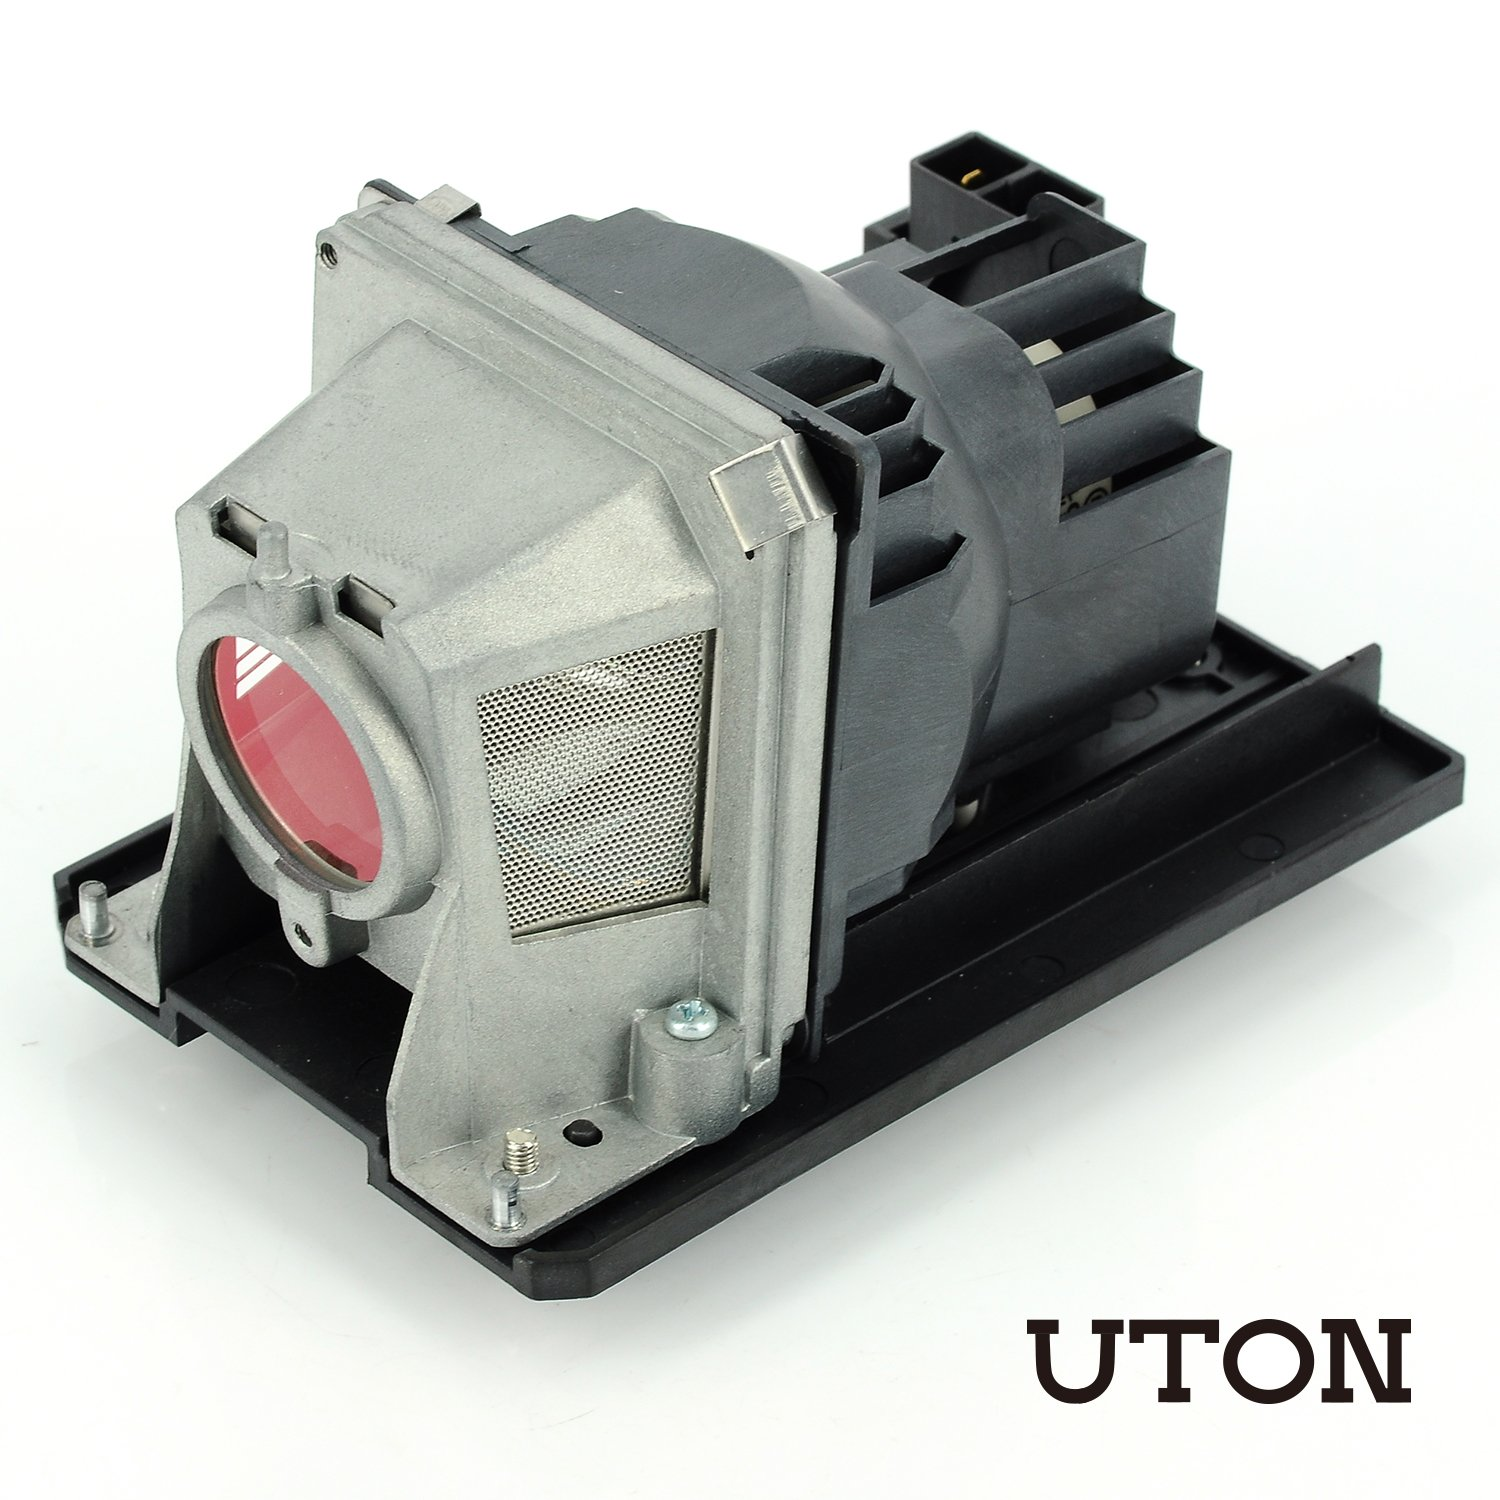 Uton Replacement Projector Lamp NP13LP for NEC NP110 NP115 NP115G3D NP210 NP215 NP216 V230 V230X V260 V260G V260R V260W V260X projector